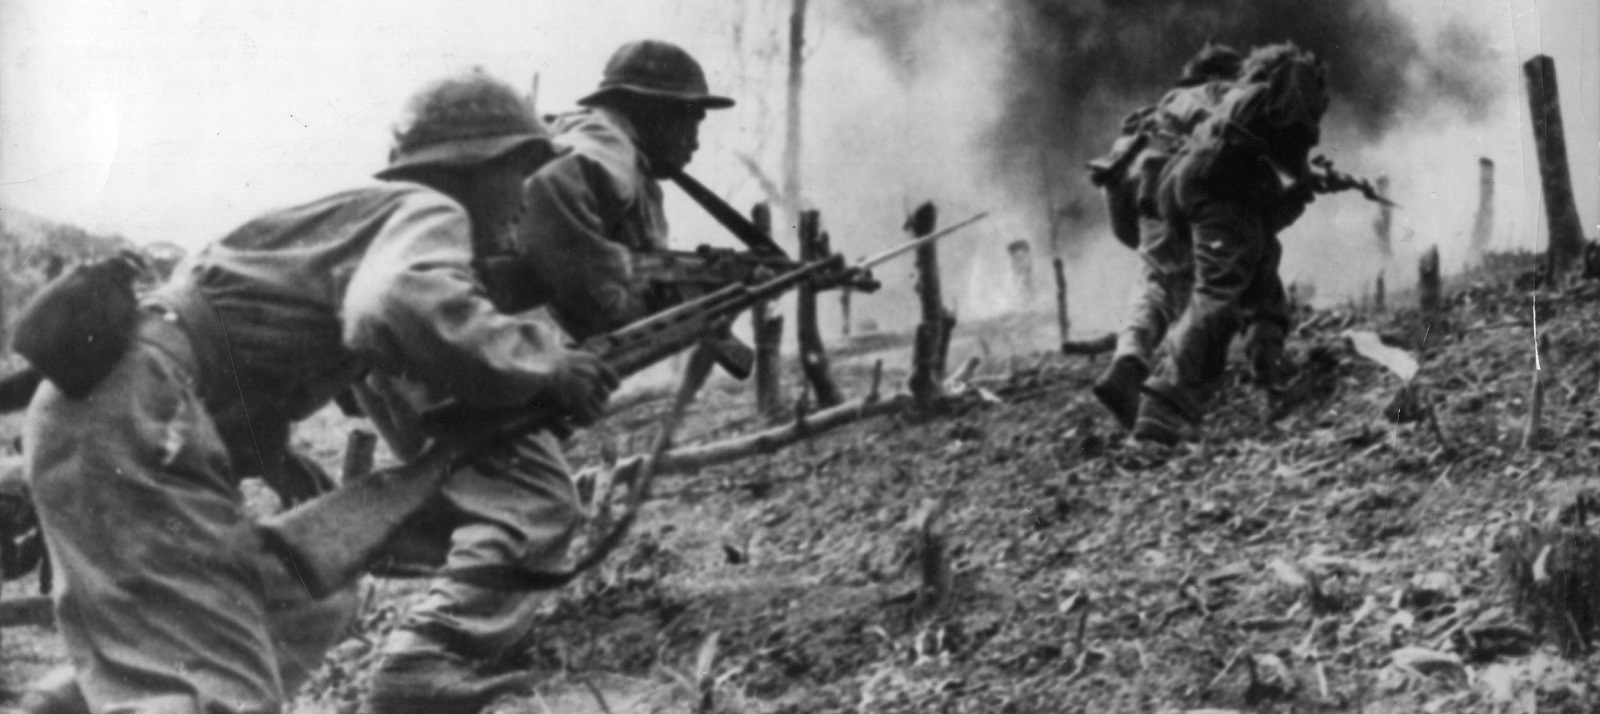 North Vietnamese troops during an assault on a South Vietnamese paratroop base at Laos. (Photo by Keystone/Getty Images)